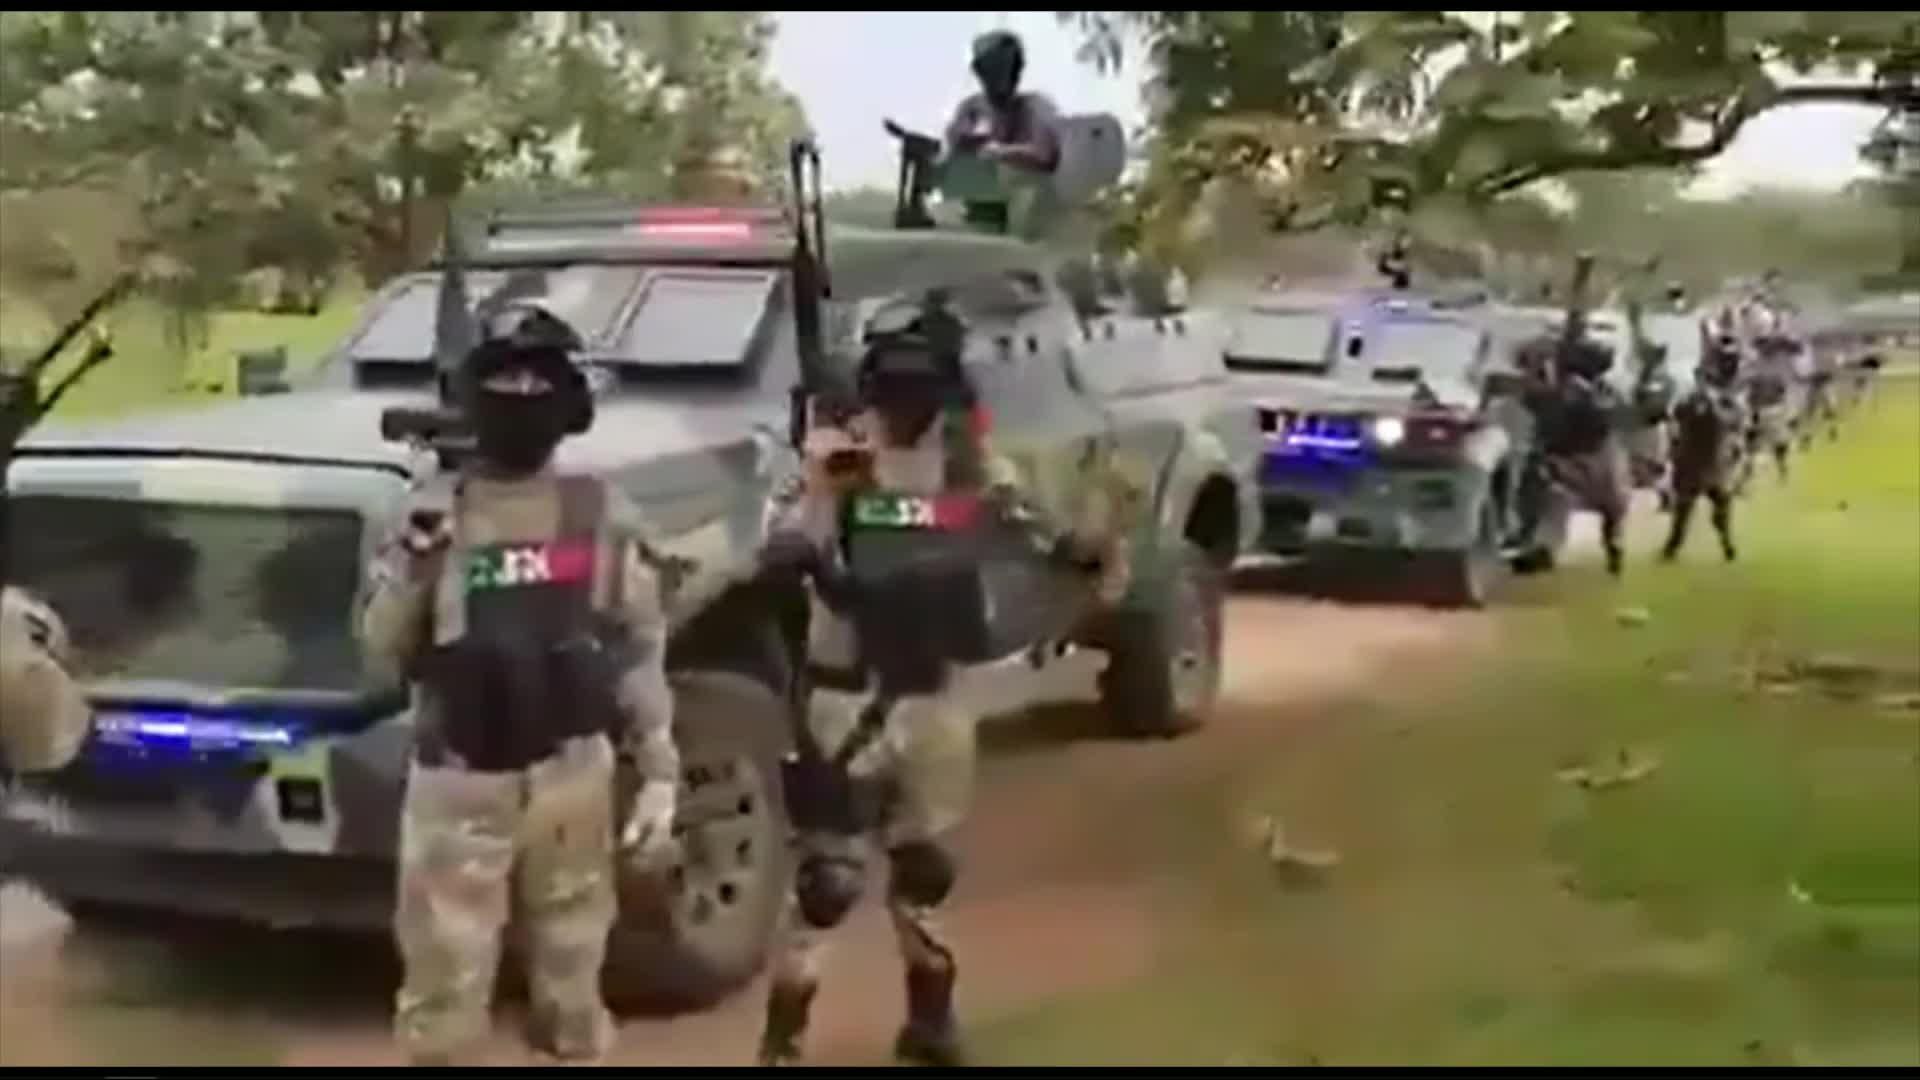 This is not the Mexican army or police, it's the CJNG cartel